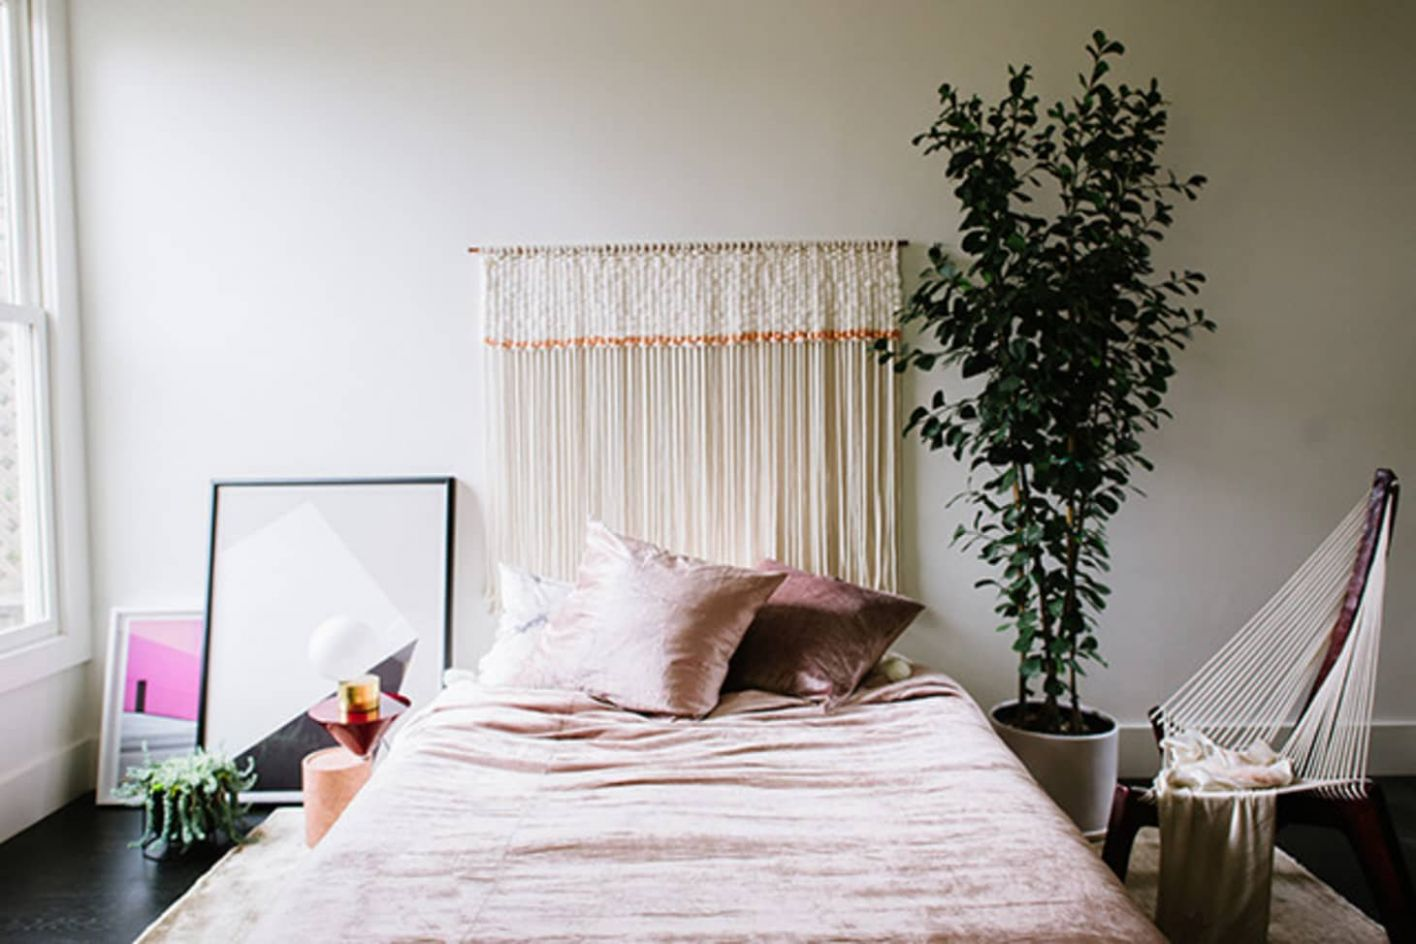 11 Ideas for How to Frame a Bed Without a Headboard | Apartment ..